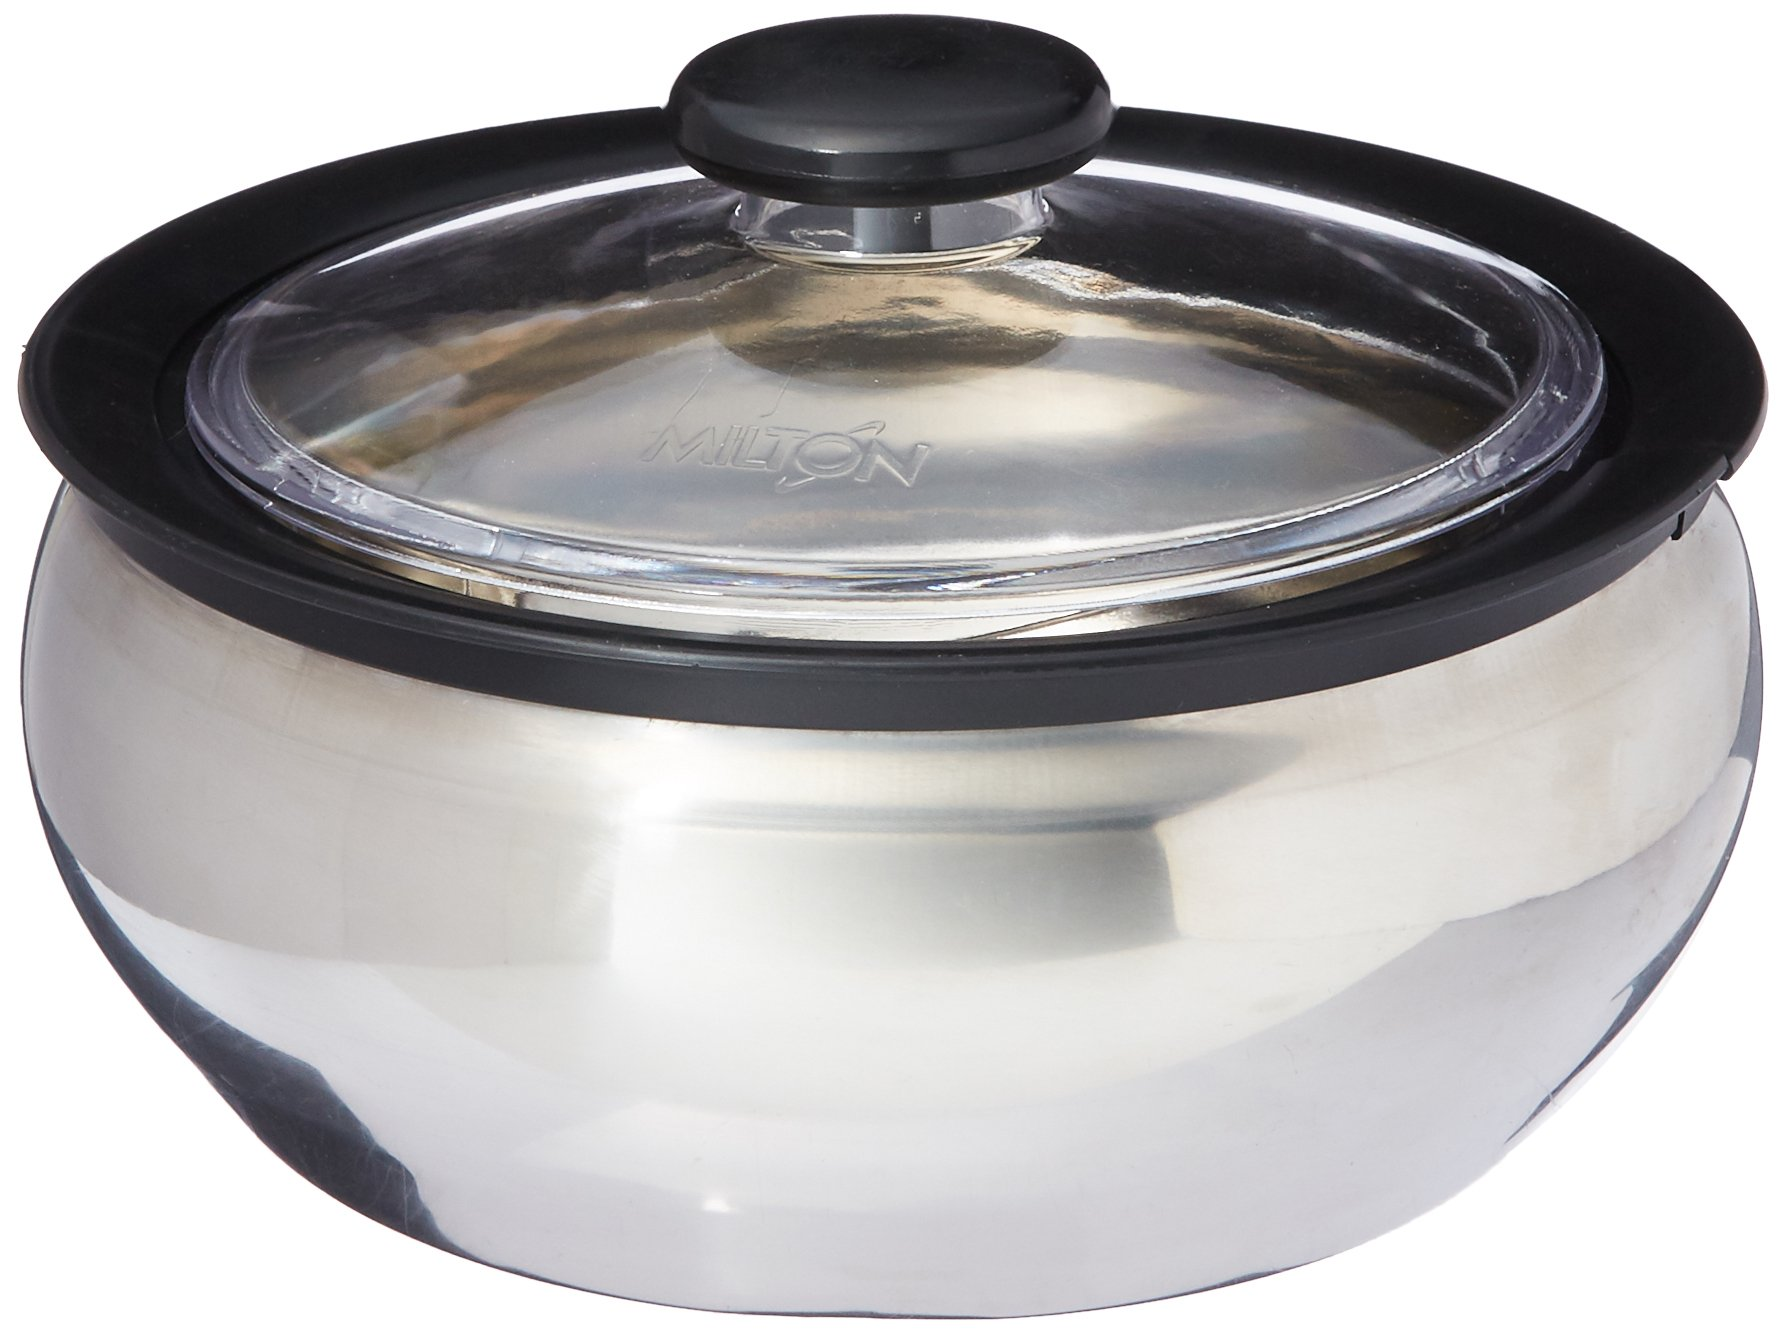 Milton ClearSteel Hot Pot Keep Warm/Cold Insulated Casserole with Stainless Steel Insert and Clear Lid, 1500ml/Small, Silver by Milton